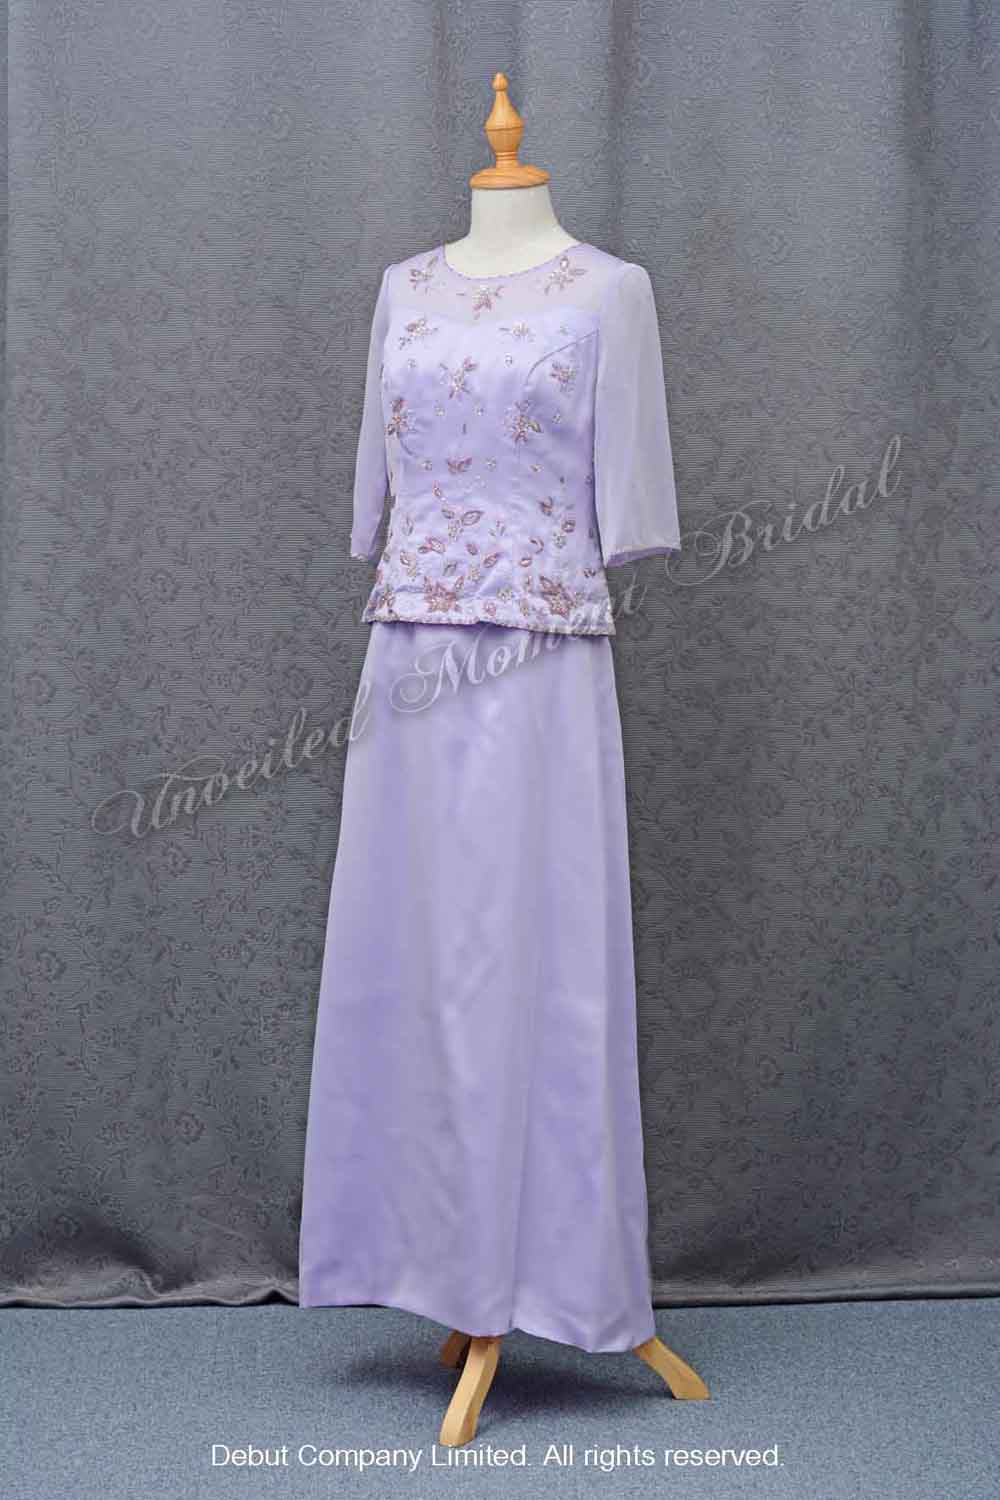 Light Purple Mother-of-Bride Dress with lone sleeves 淺紫色長袖媽咪晚裝裙